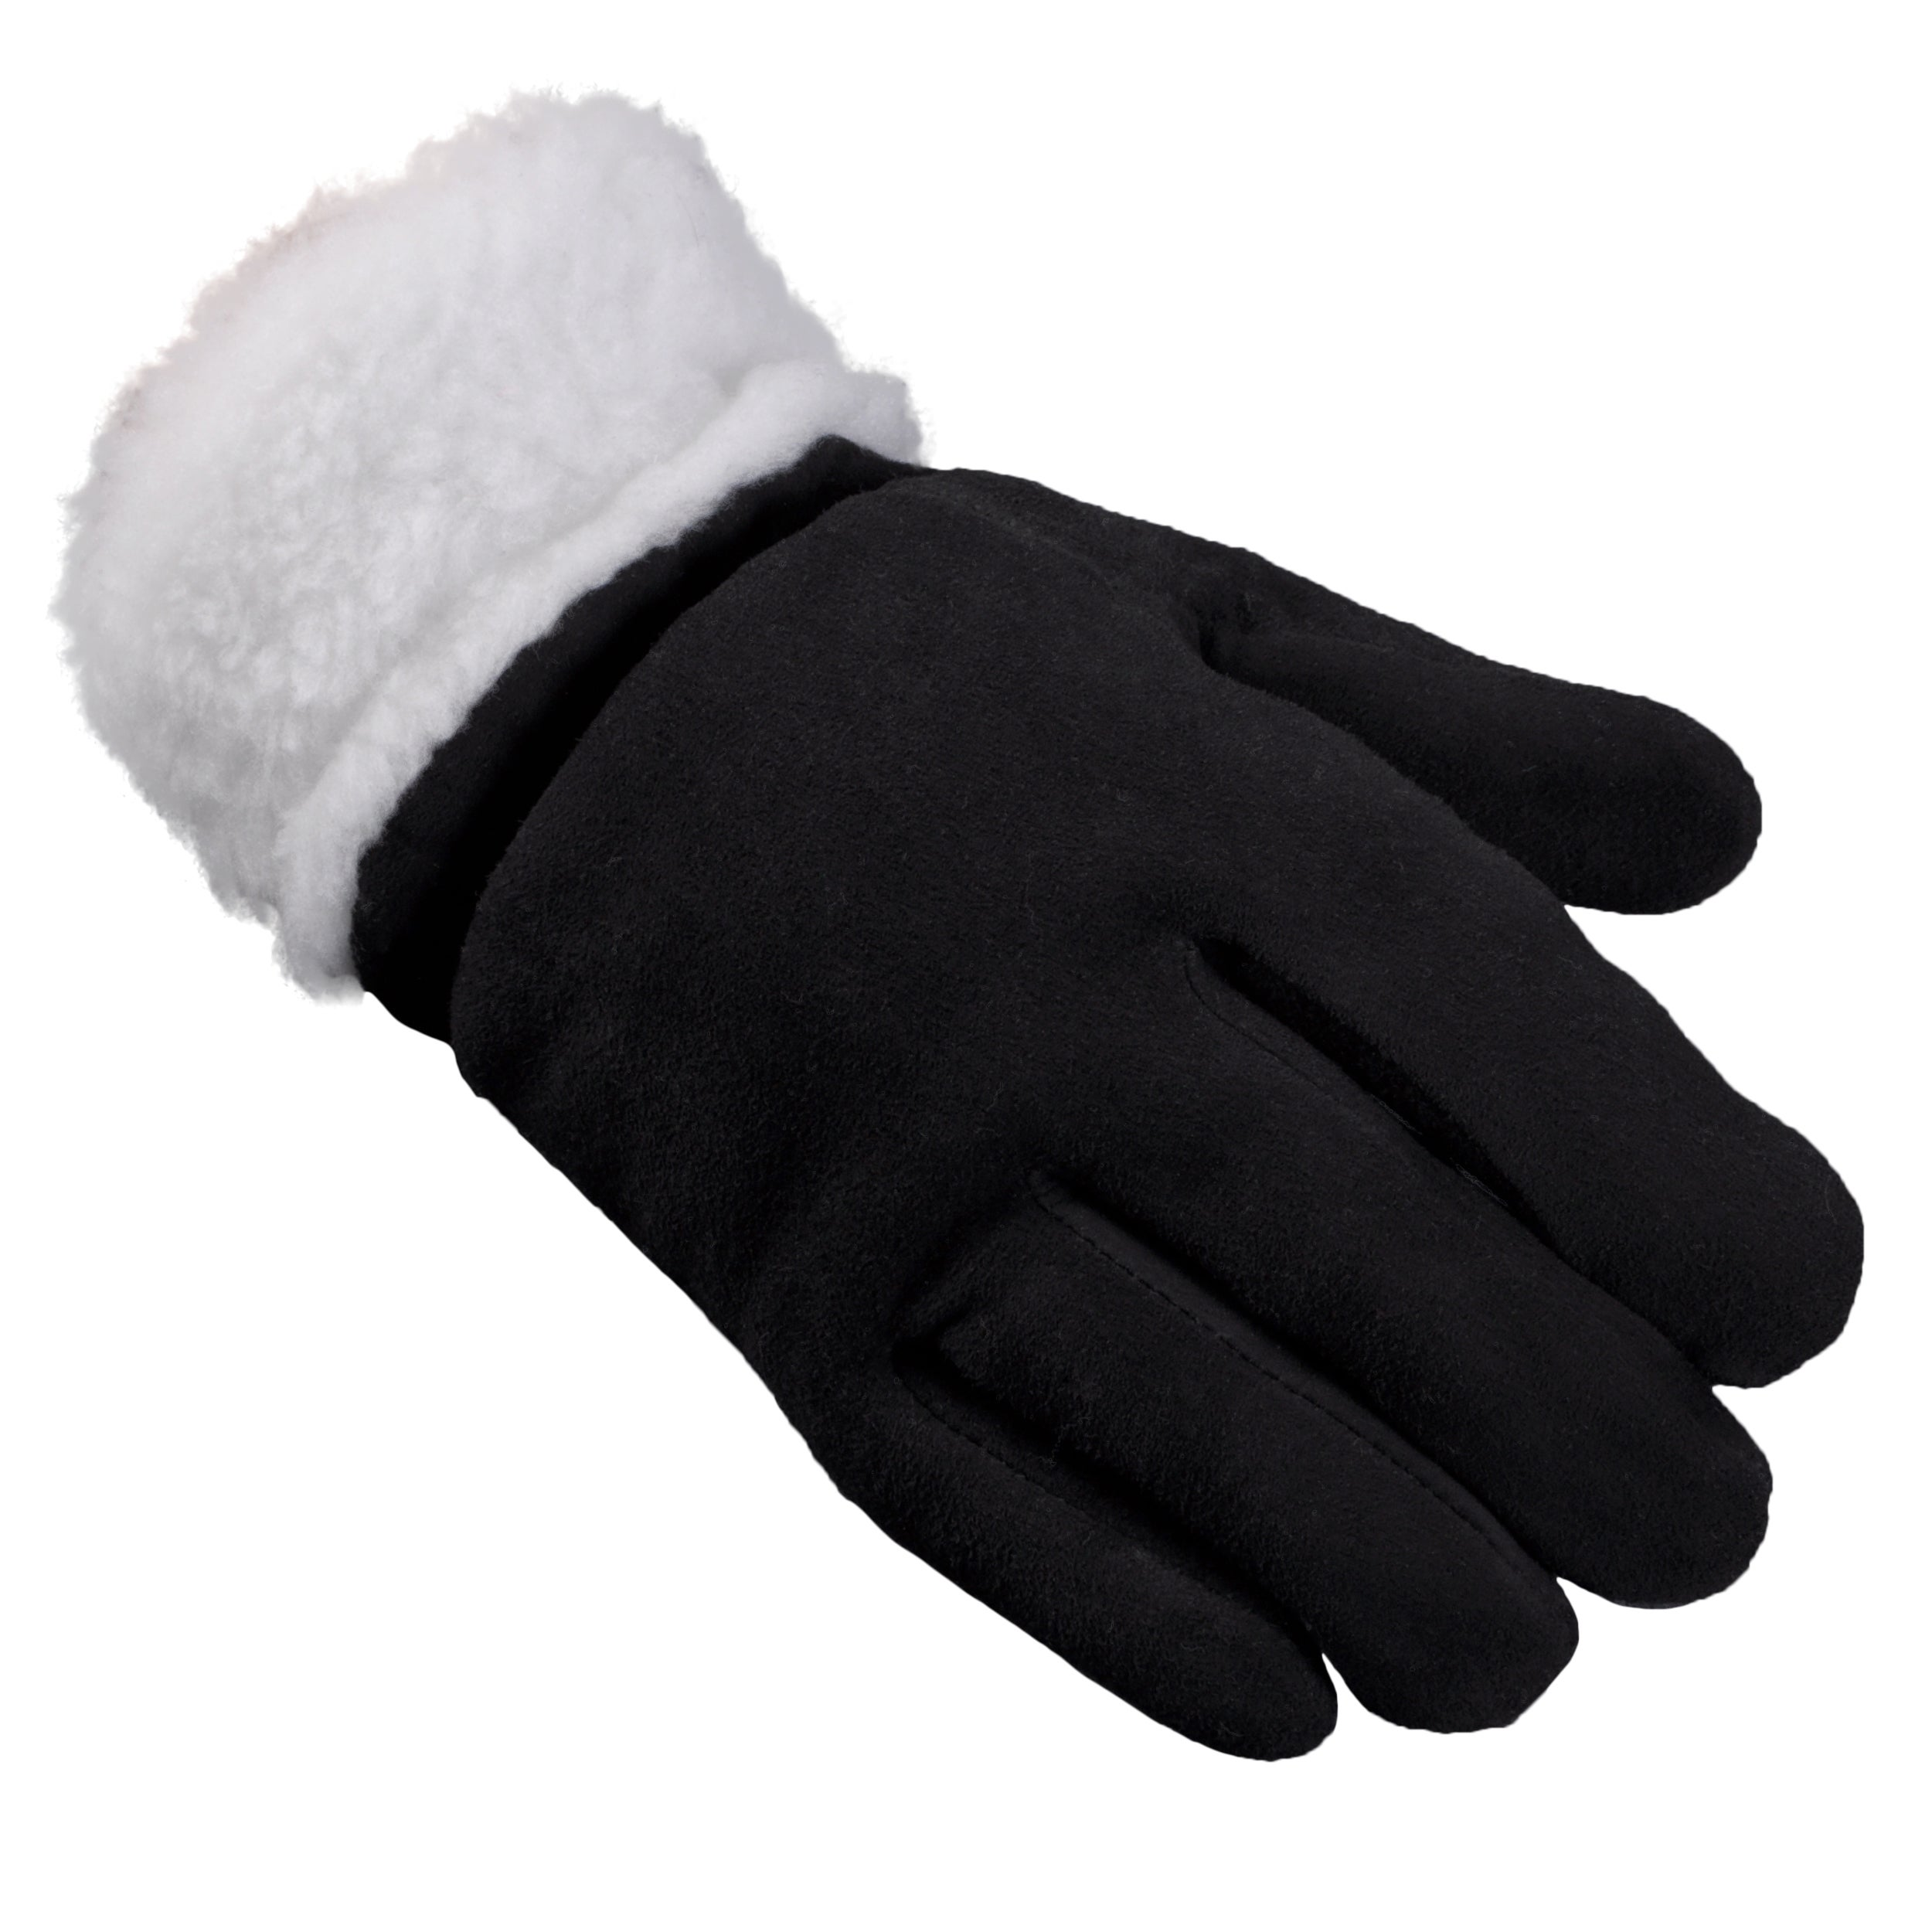 Journee Collection Women's Buttersoft Deerskin Leather Gloves